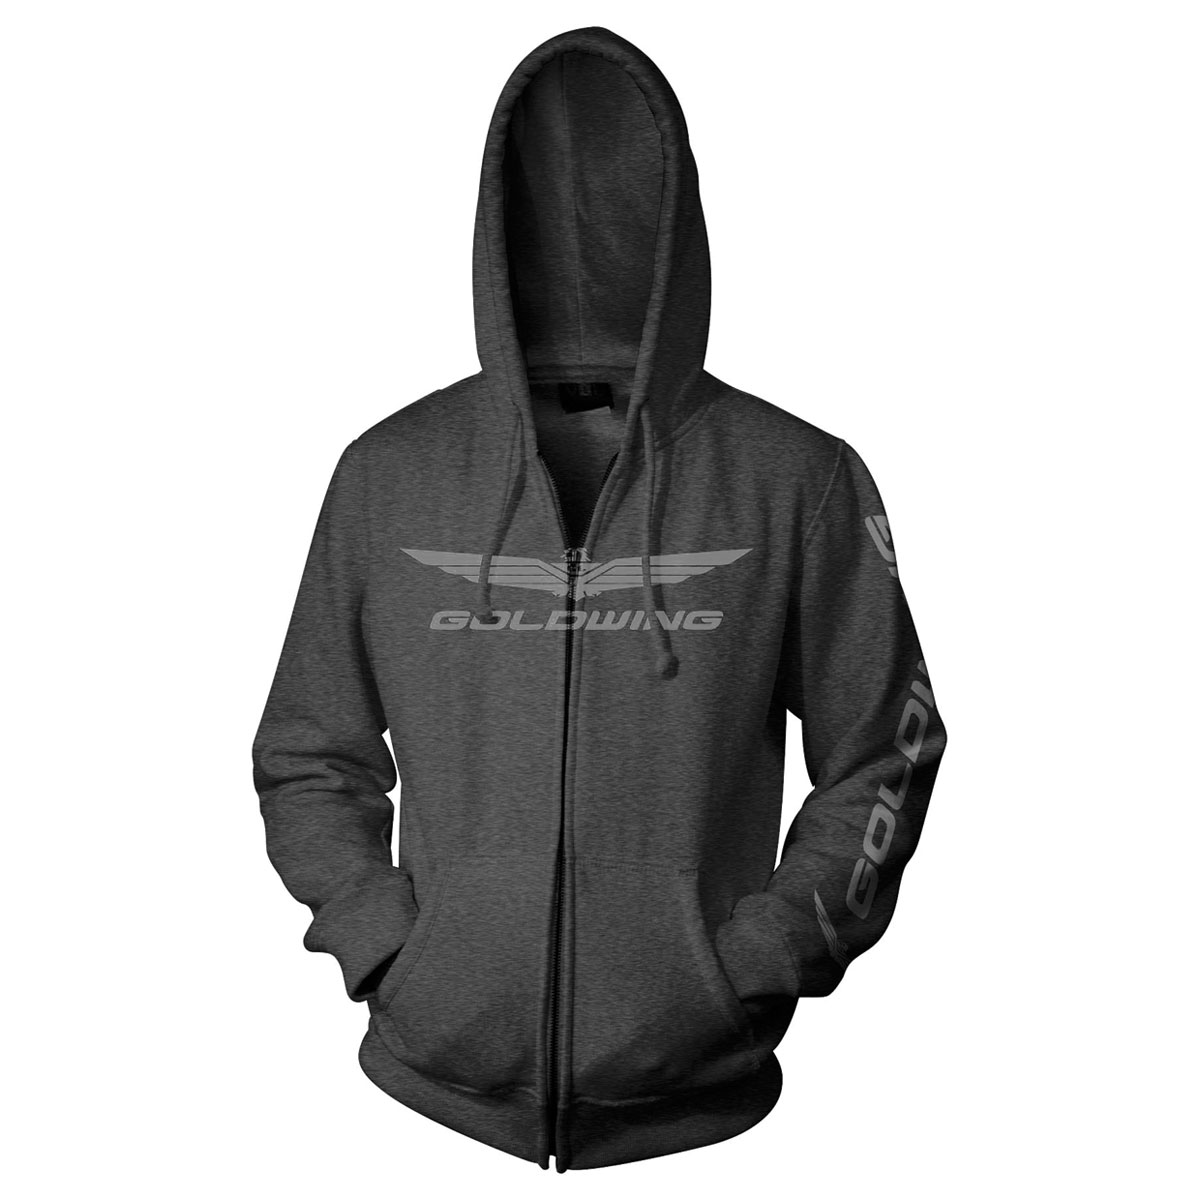 Honda Gold Wing Casual Charcoal Zip-Up Hoodie